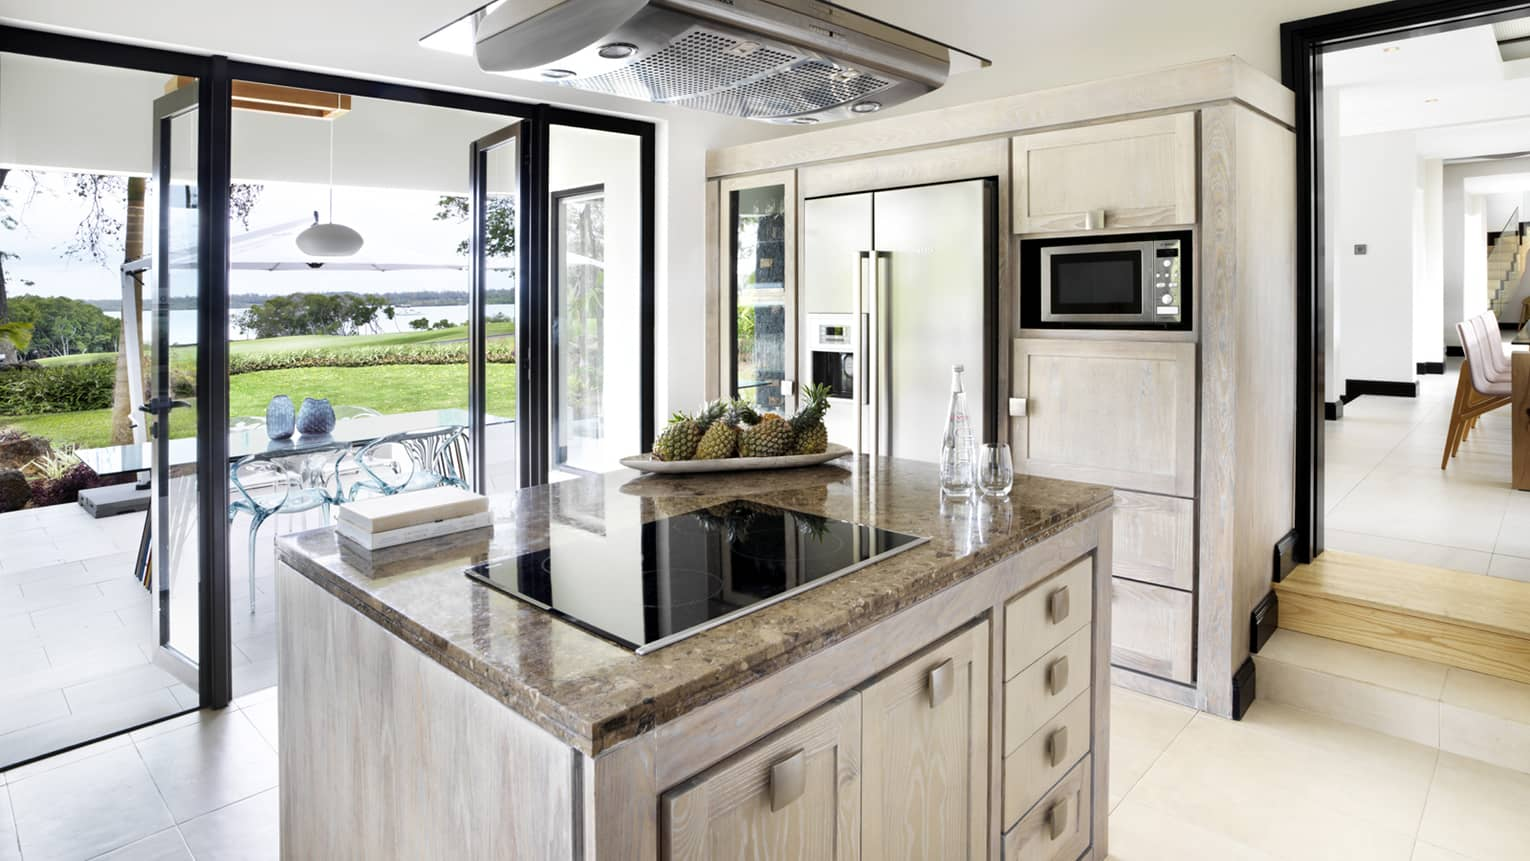 Stove range on marble island in bright, modern kitchen with open glass walls